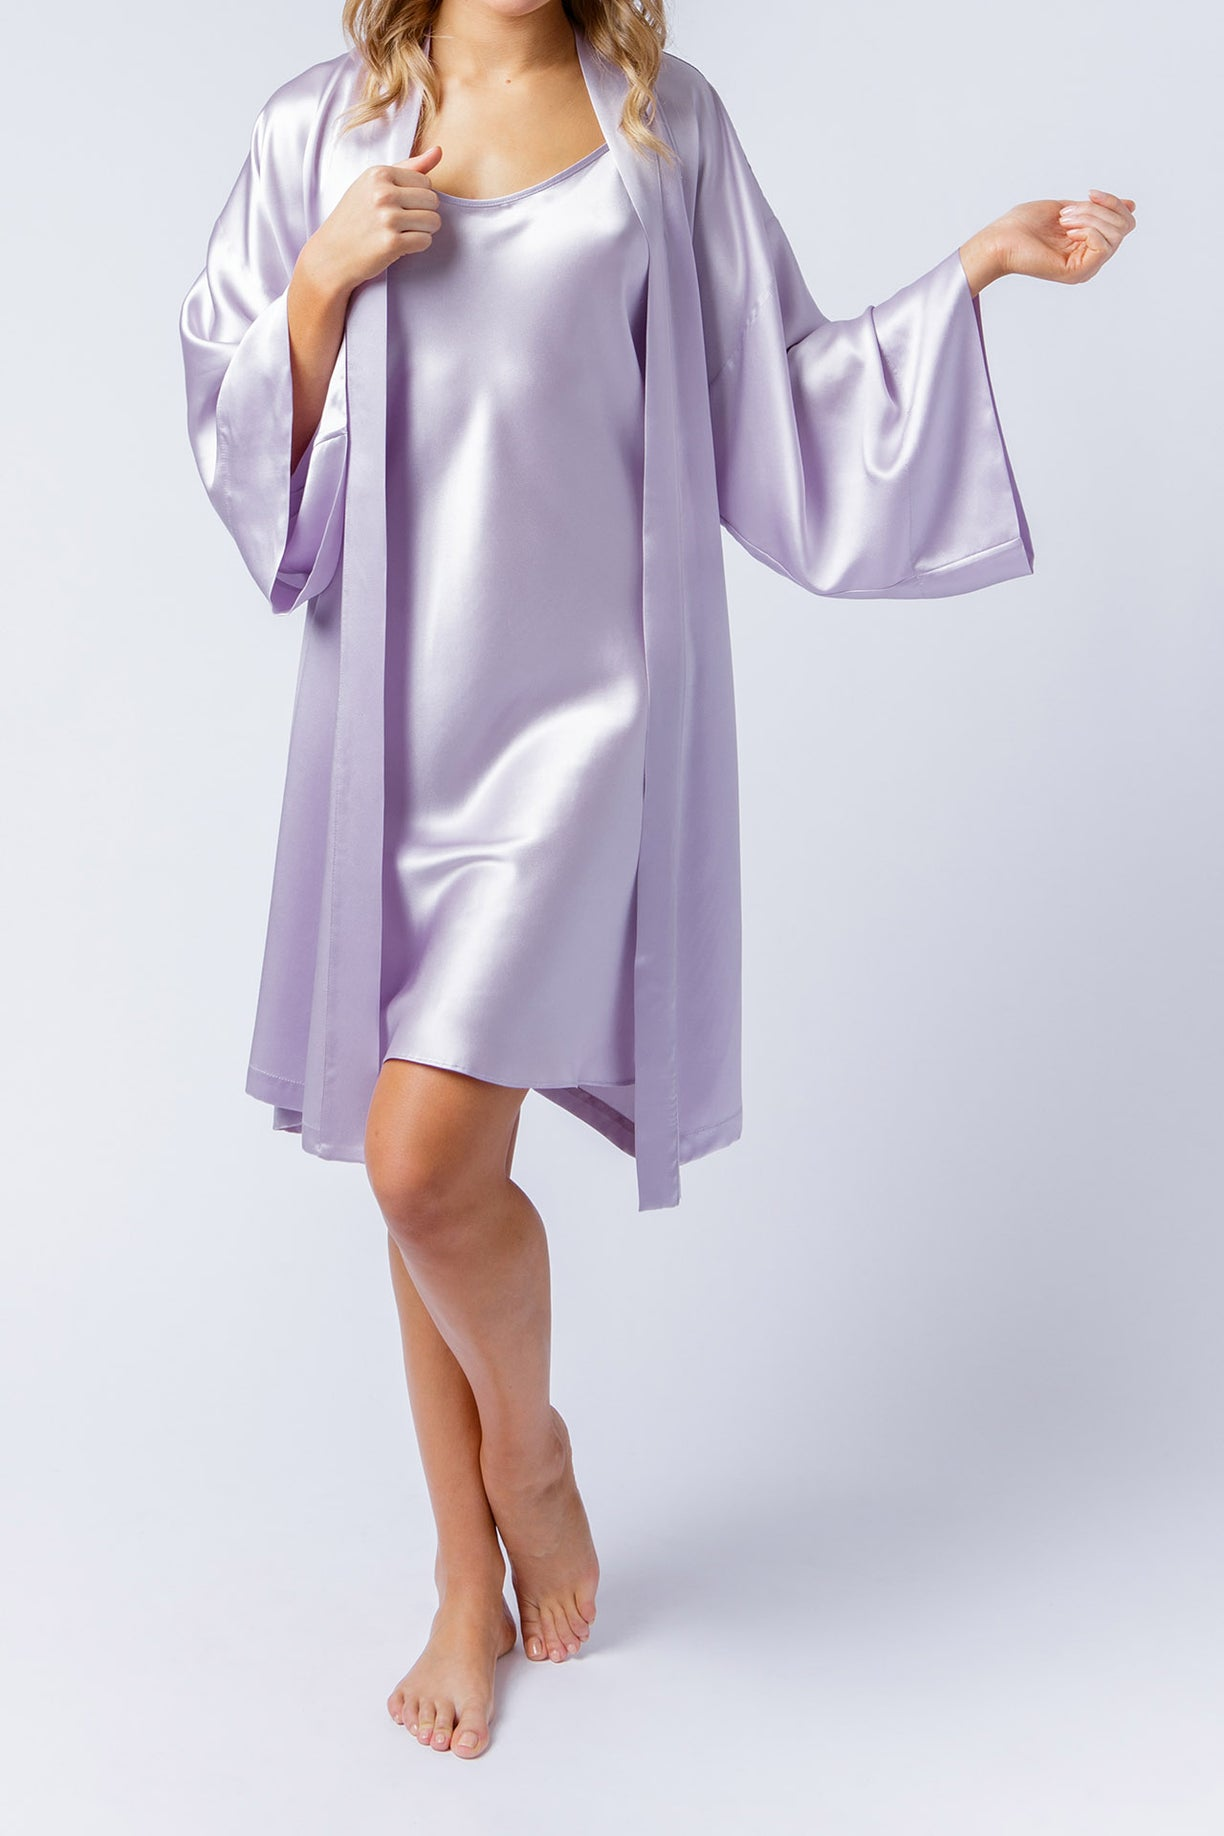 Estelle slip dress, with Serena Kimono, in orchid, front